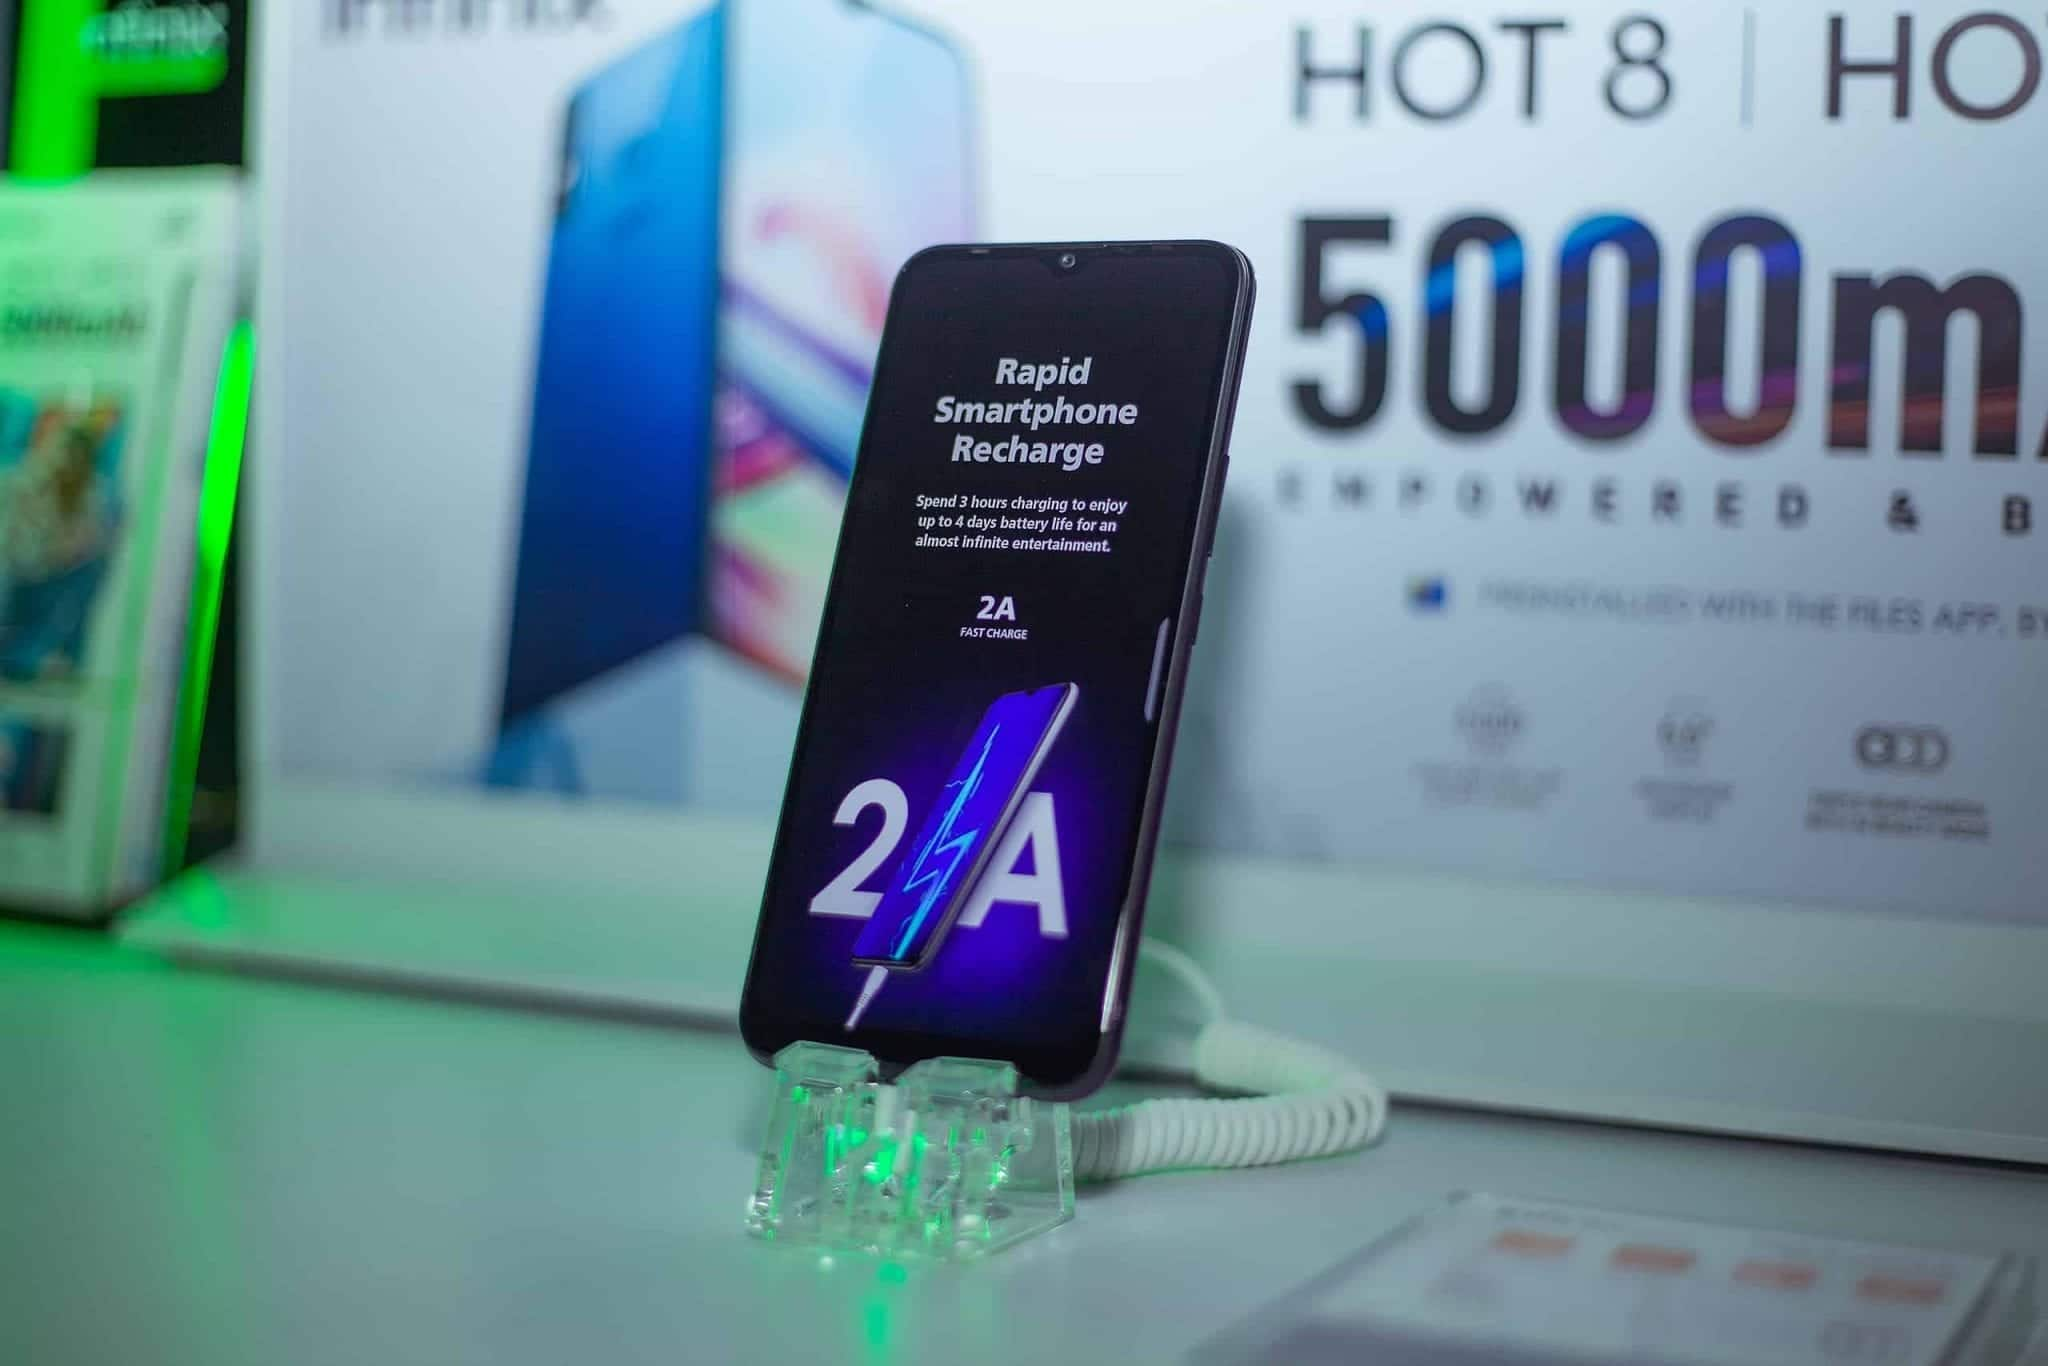 Infinix Hot 8 (2019): Full phone specifications, price and more